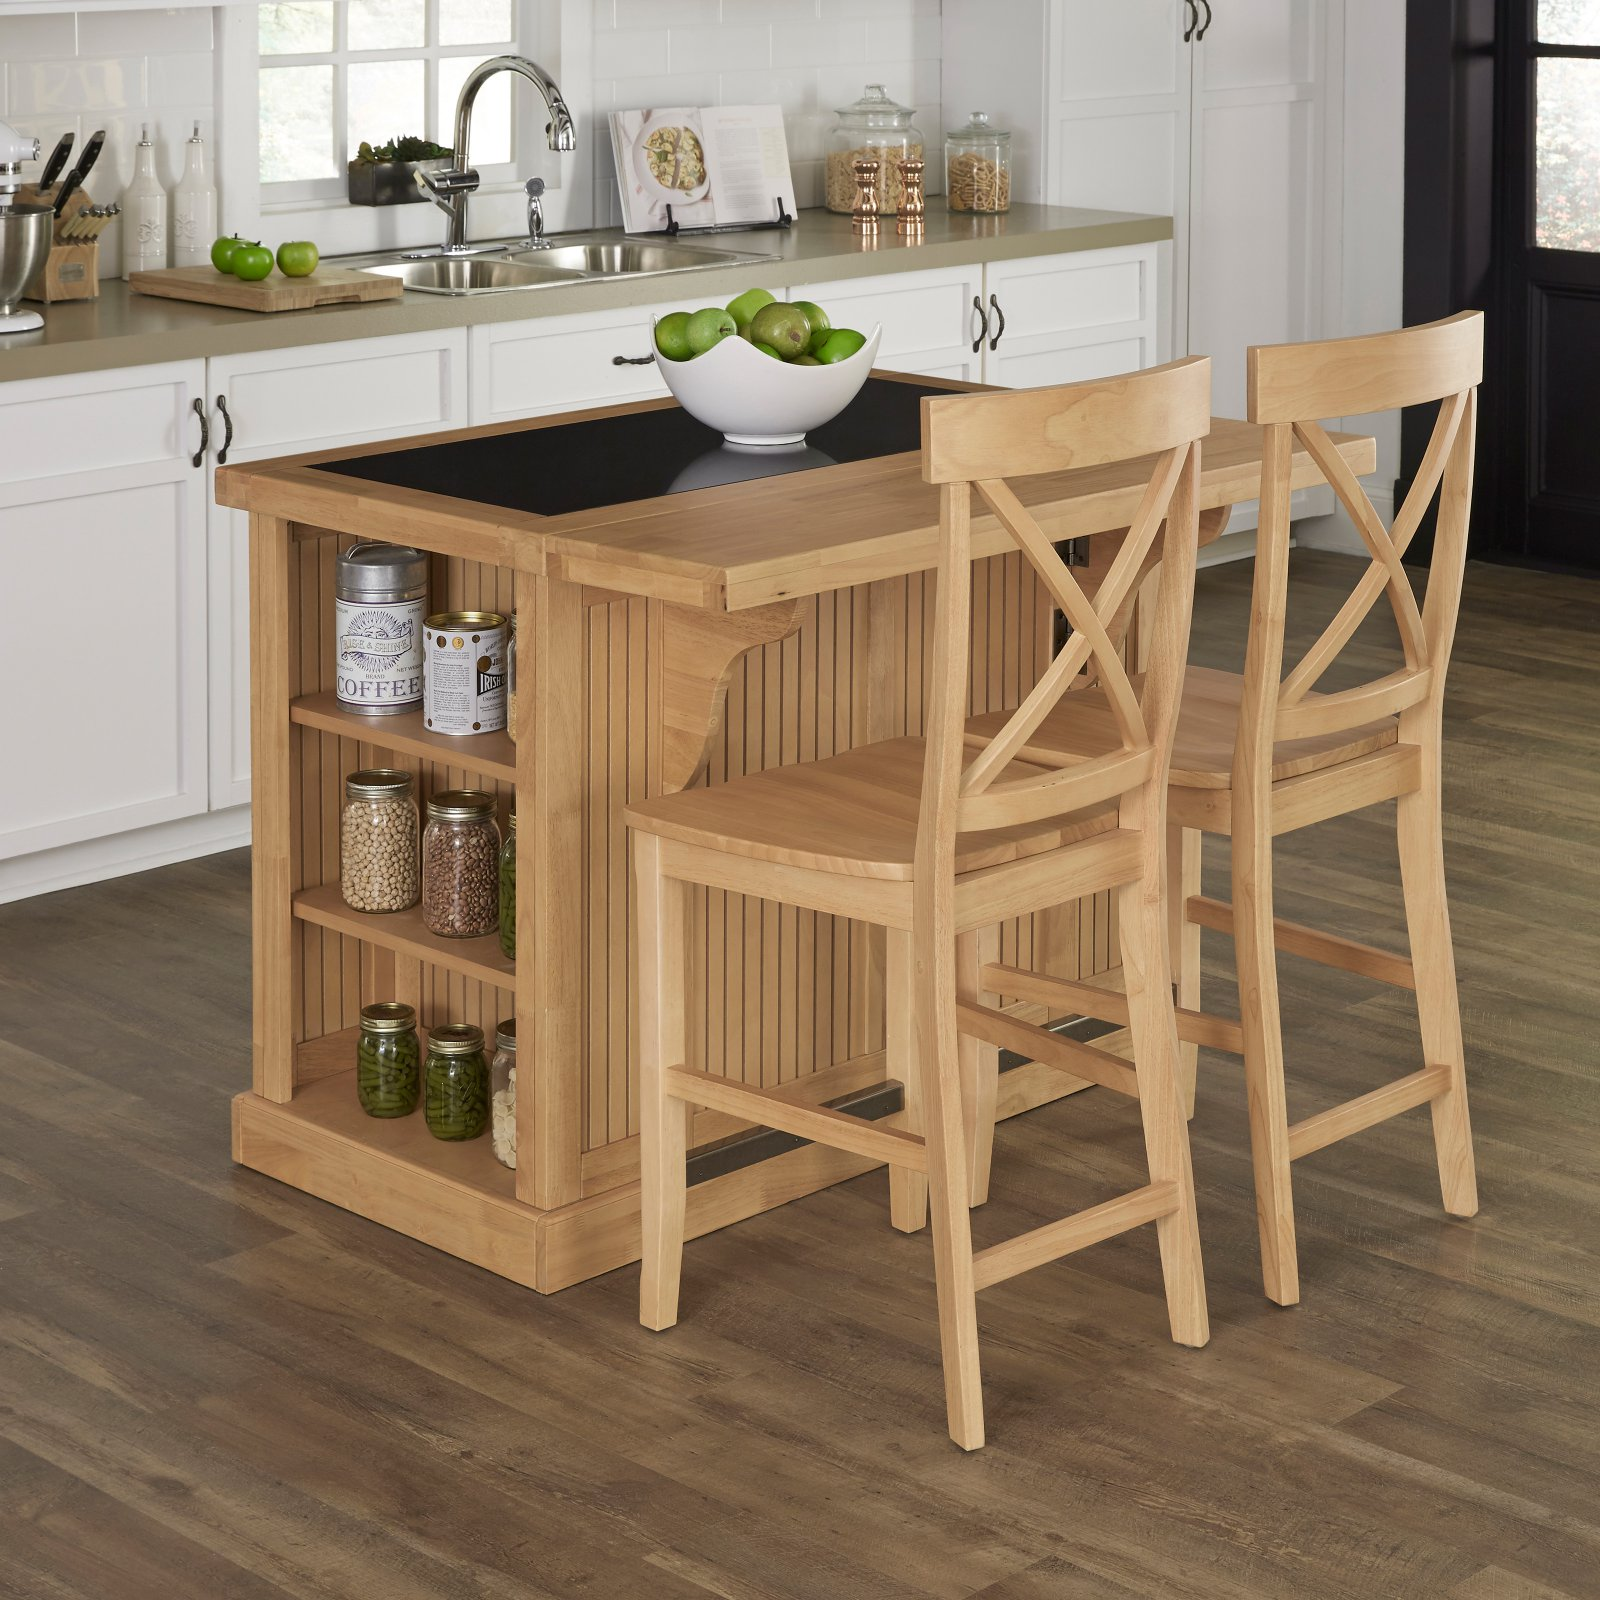 Home Styles Nantucket Natural Kitchen Island with Granite...